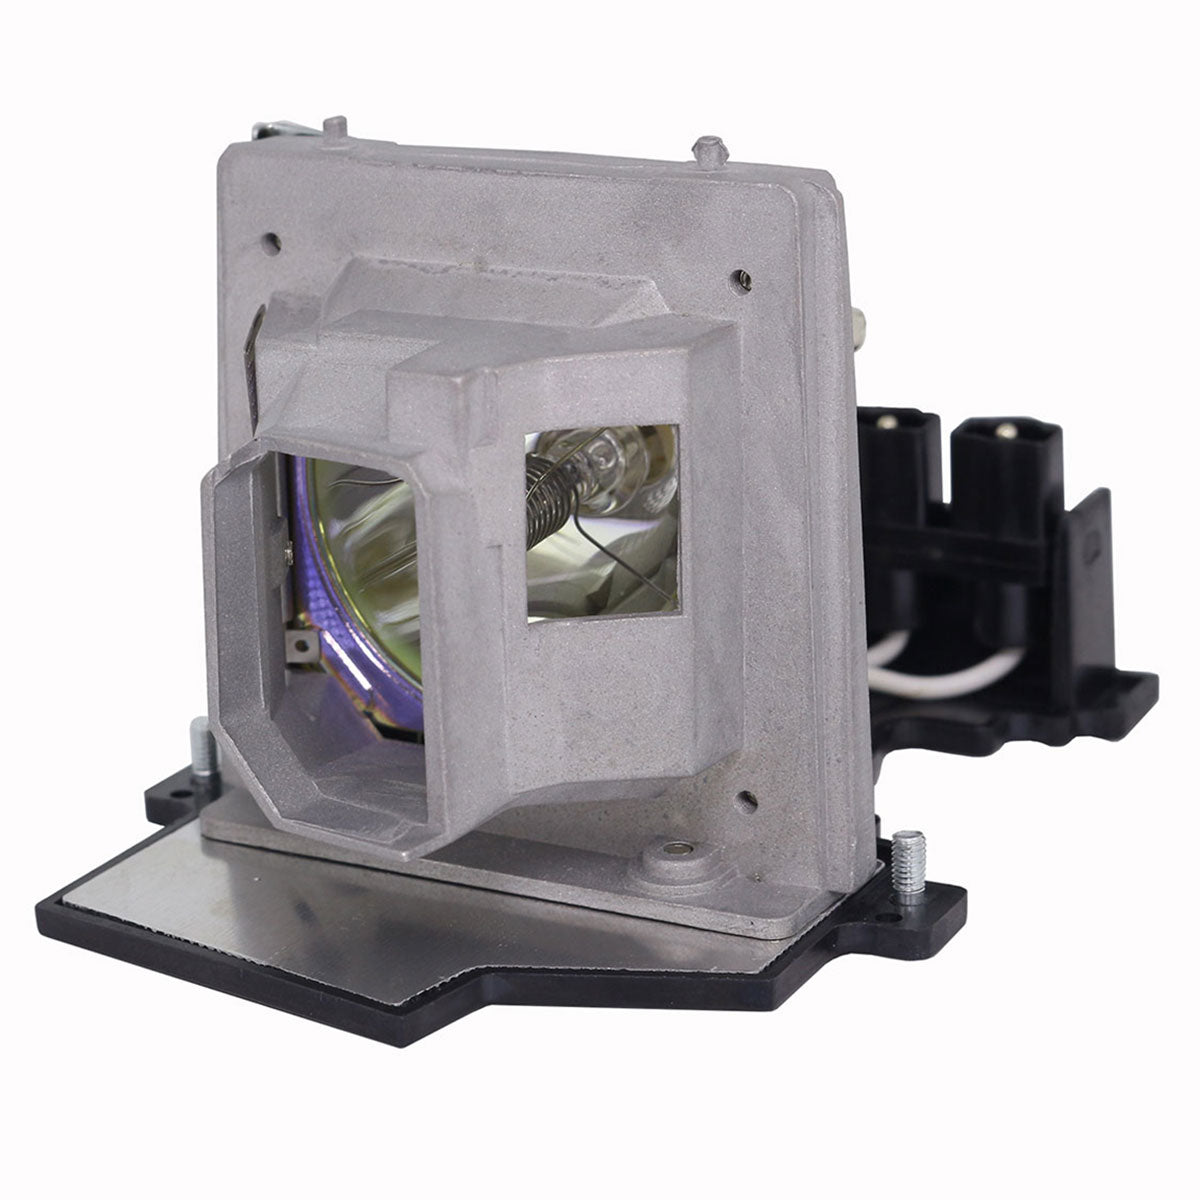 PLUS LU6200 Osram Projector Lamp Module